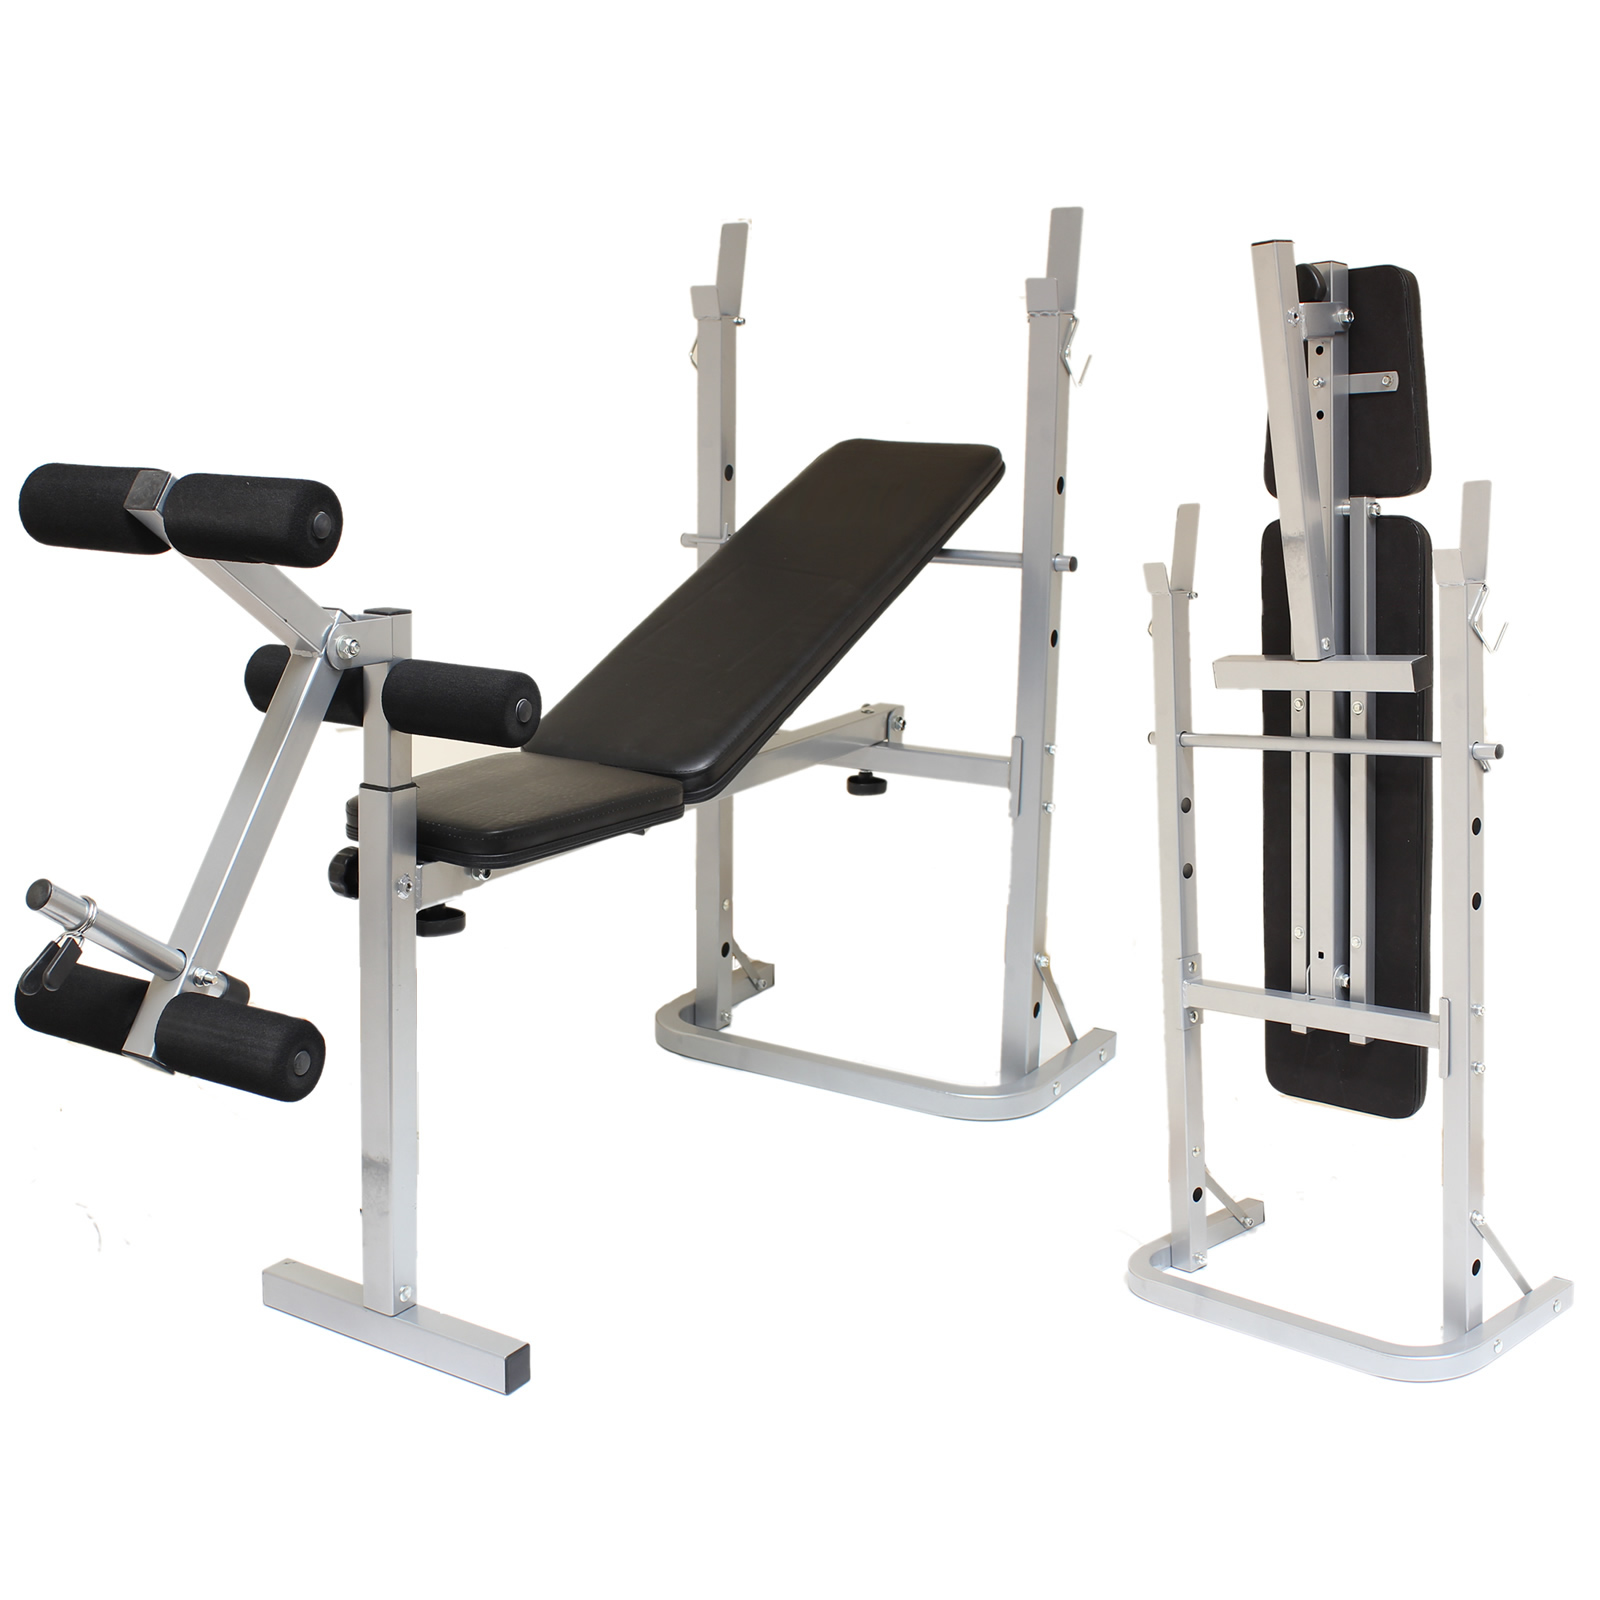 Folding Weight Bench Home Gym Exercise Lift Lifting Chest Press Leg Fitness Ebay